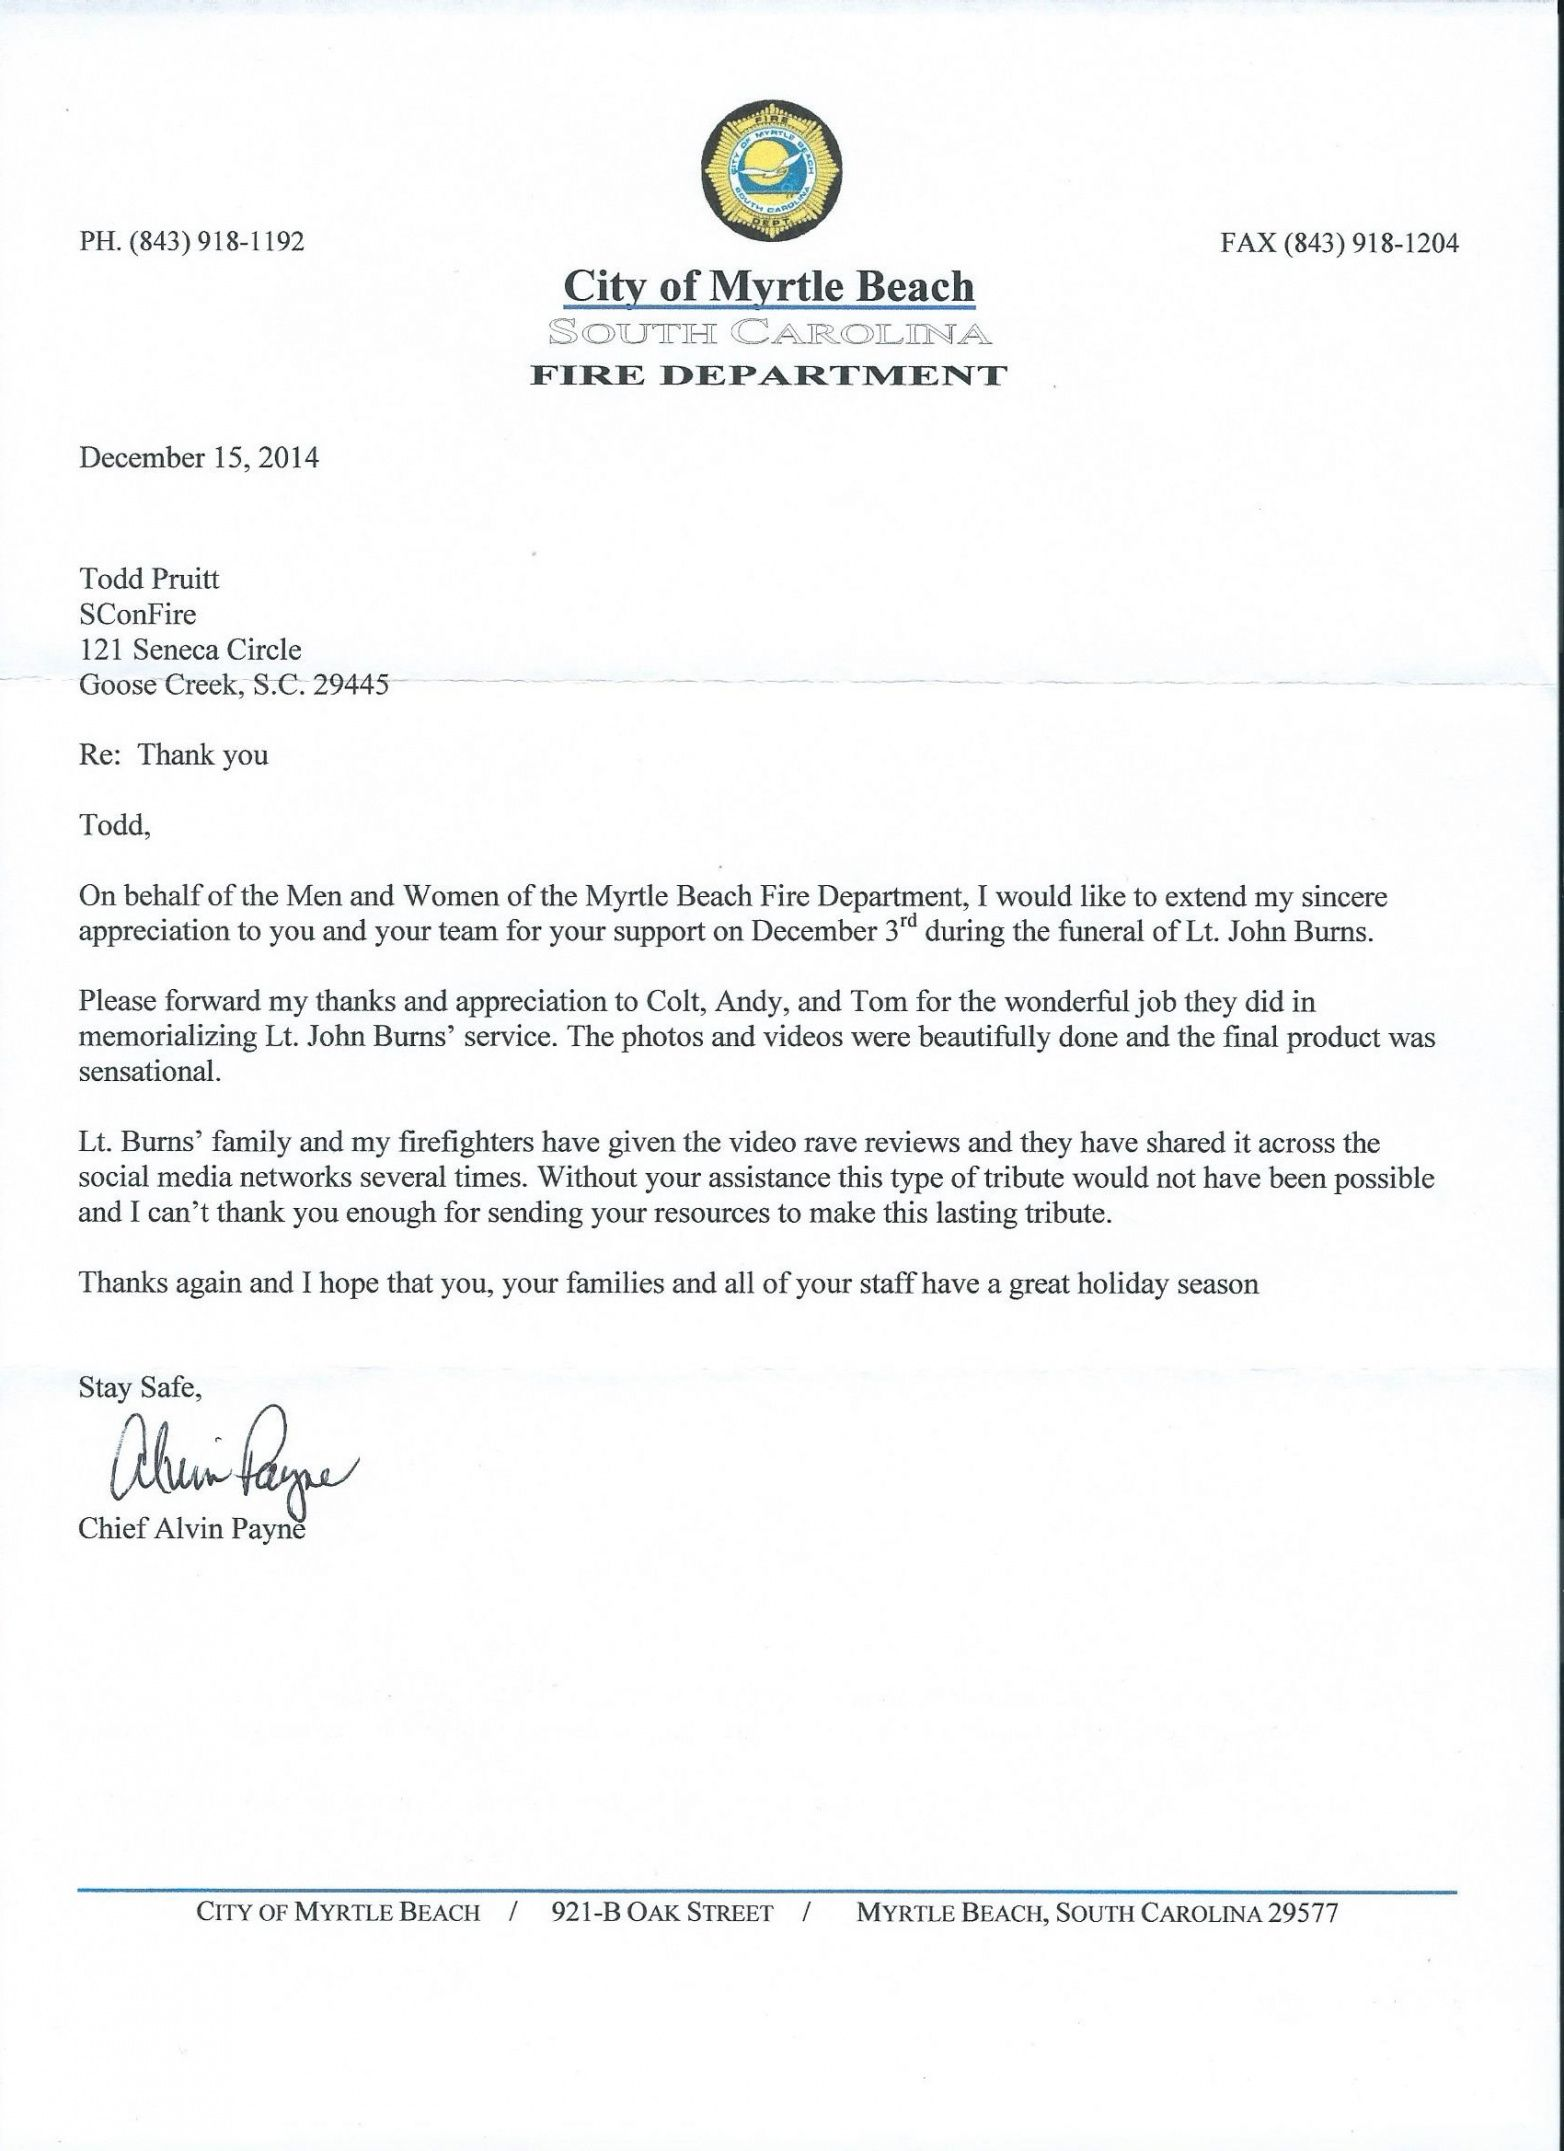 printable sconfire receives thank you letter from the myrtle beach fire department firefighter resignation letter sample